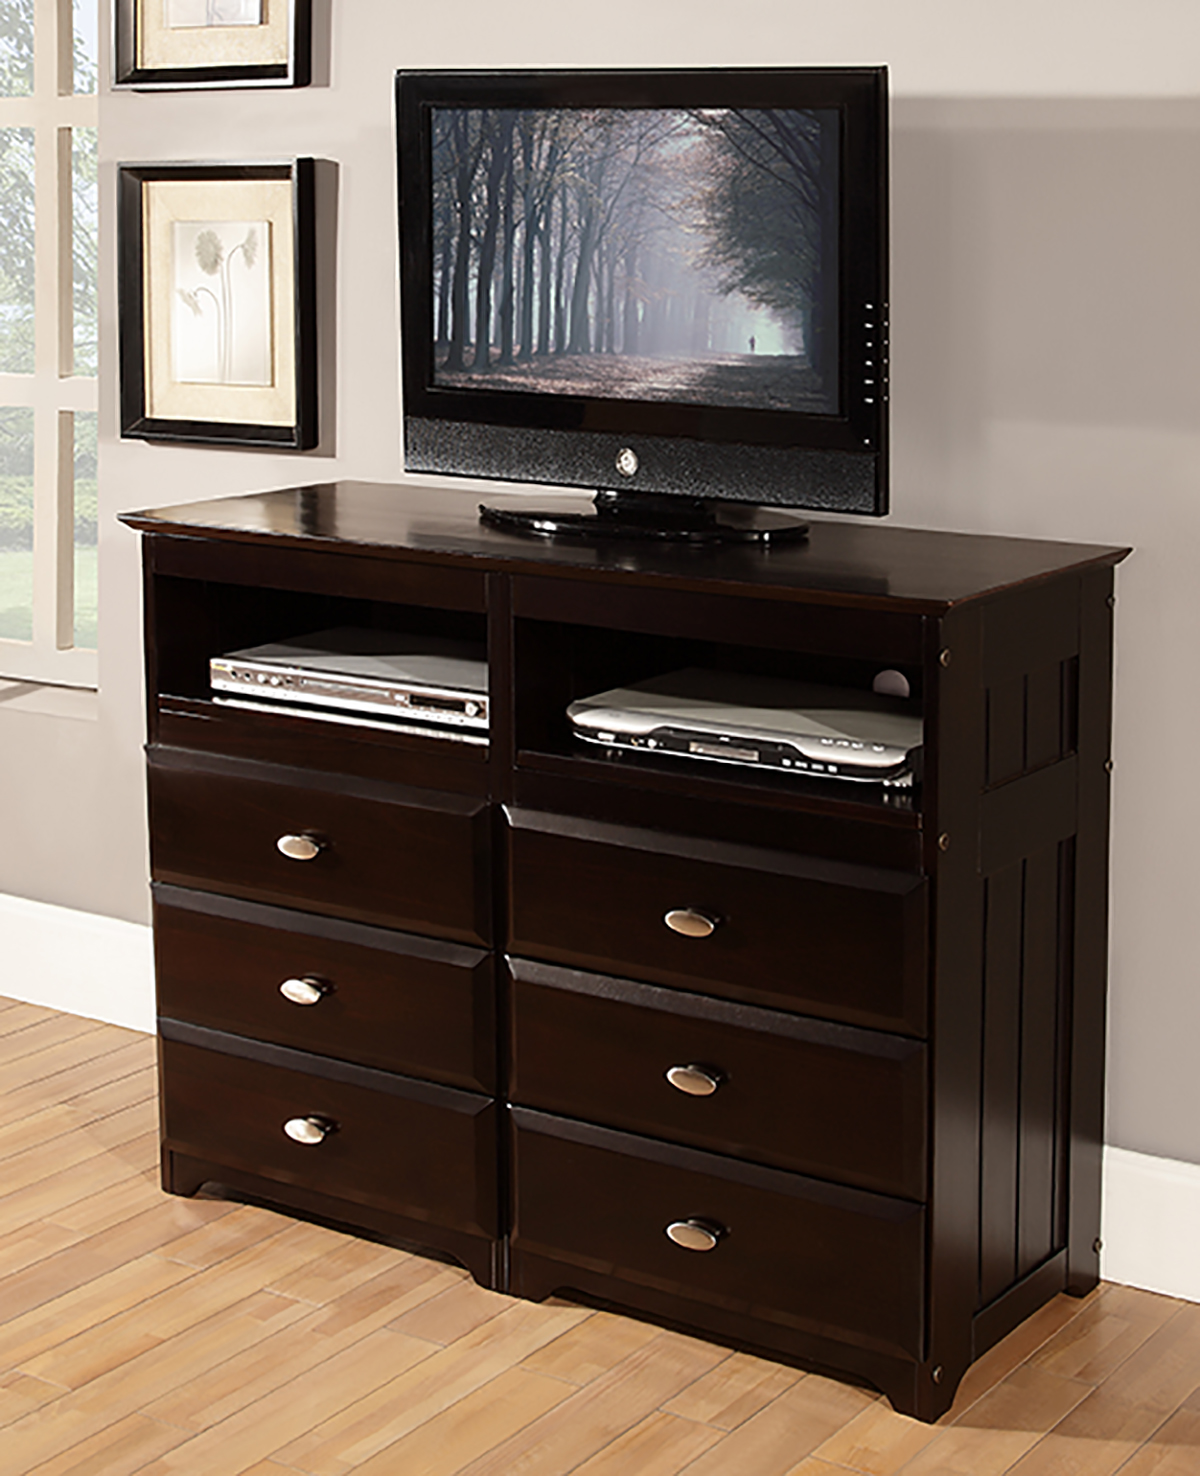 Discovery World Furniture Espresso Media Chest  KFS STORES